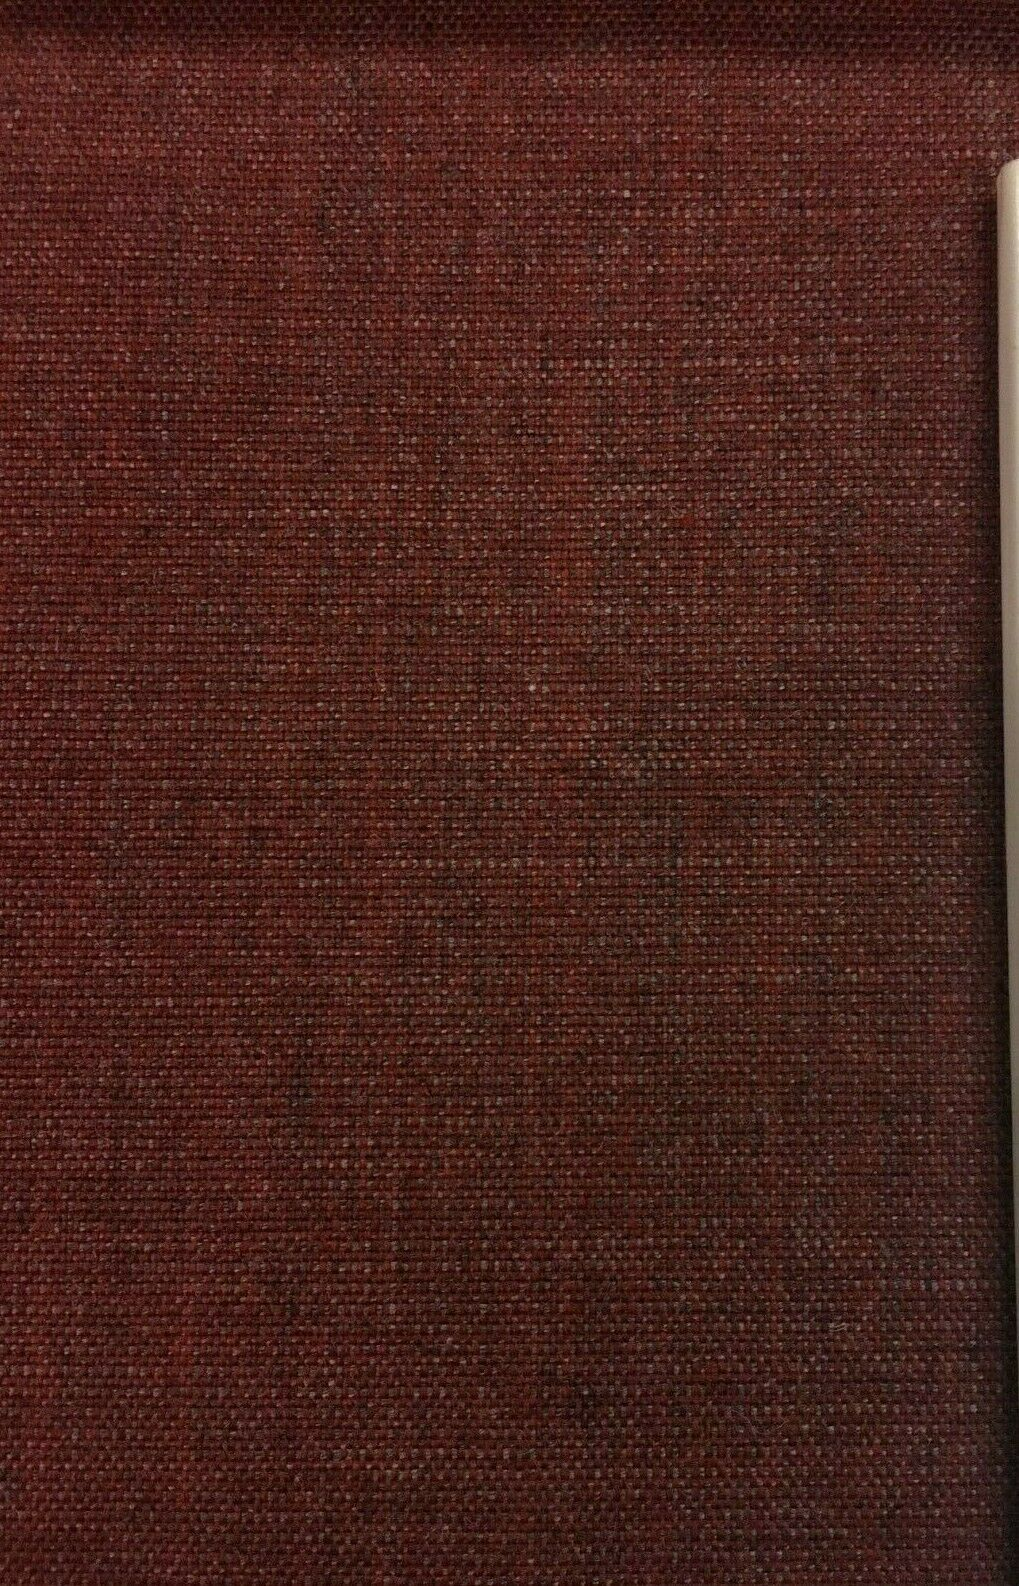 Maharam Upholstery Fabric Canvas Red and Gray Wool 466185 2.5 yds L